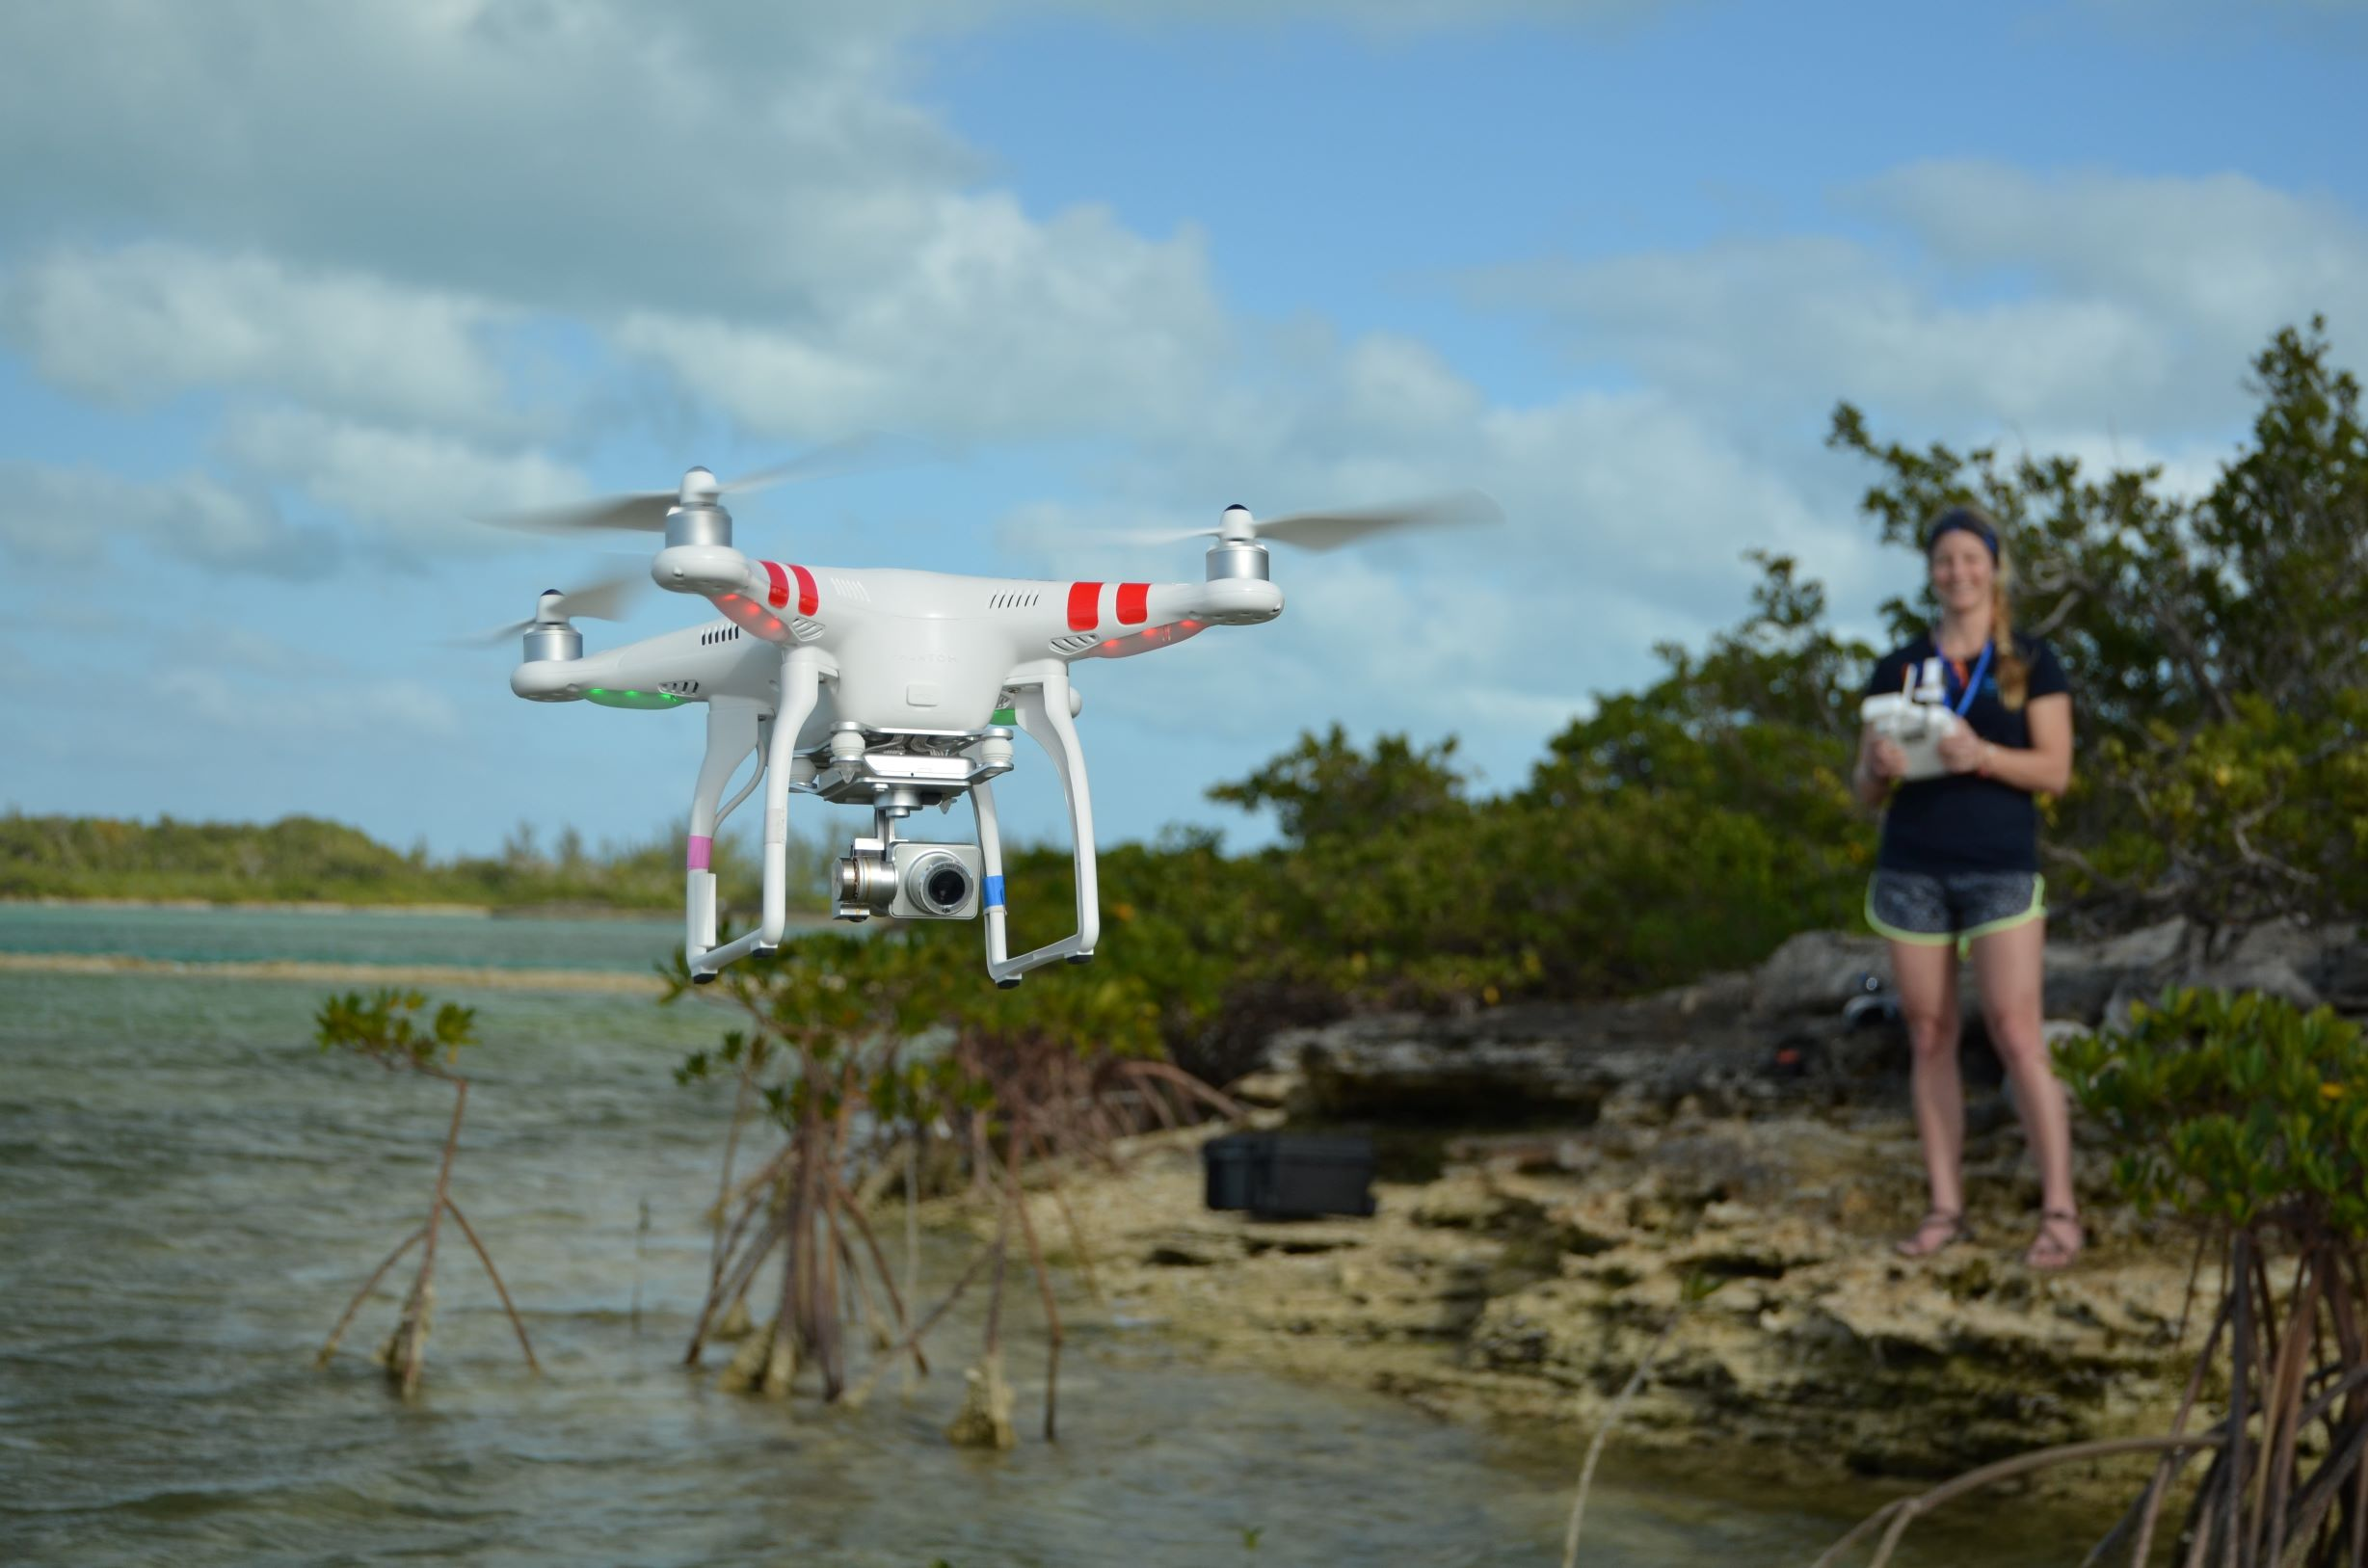 Study lead author Enie Hensel flies a small commercial drone over the shallow waters of The Bahamas to test its utility in surveying and monitoring large marine animals. The researchers conducted aerial surveys and analyzed drone video footage to record the numbers and species of animals spotted.